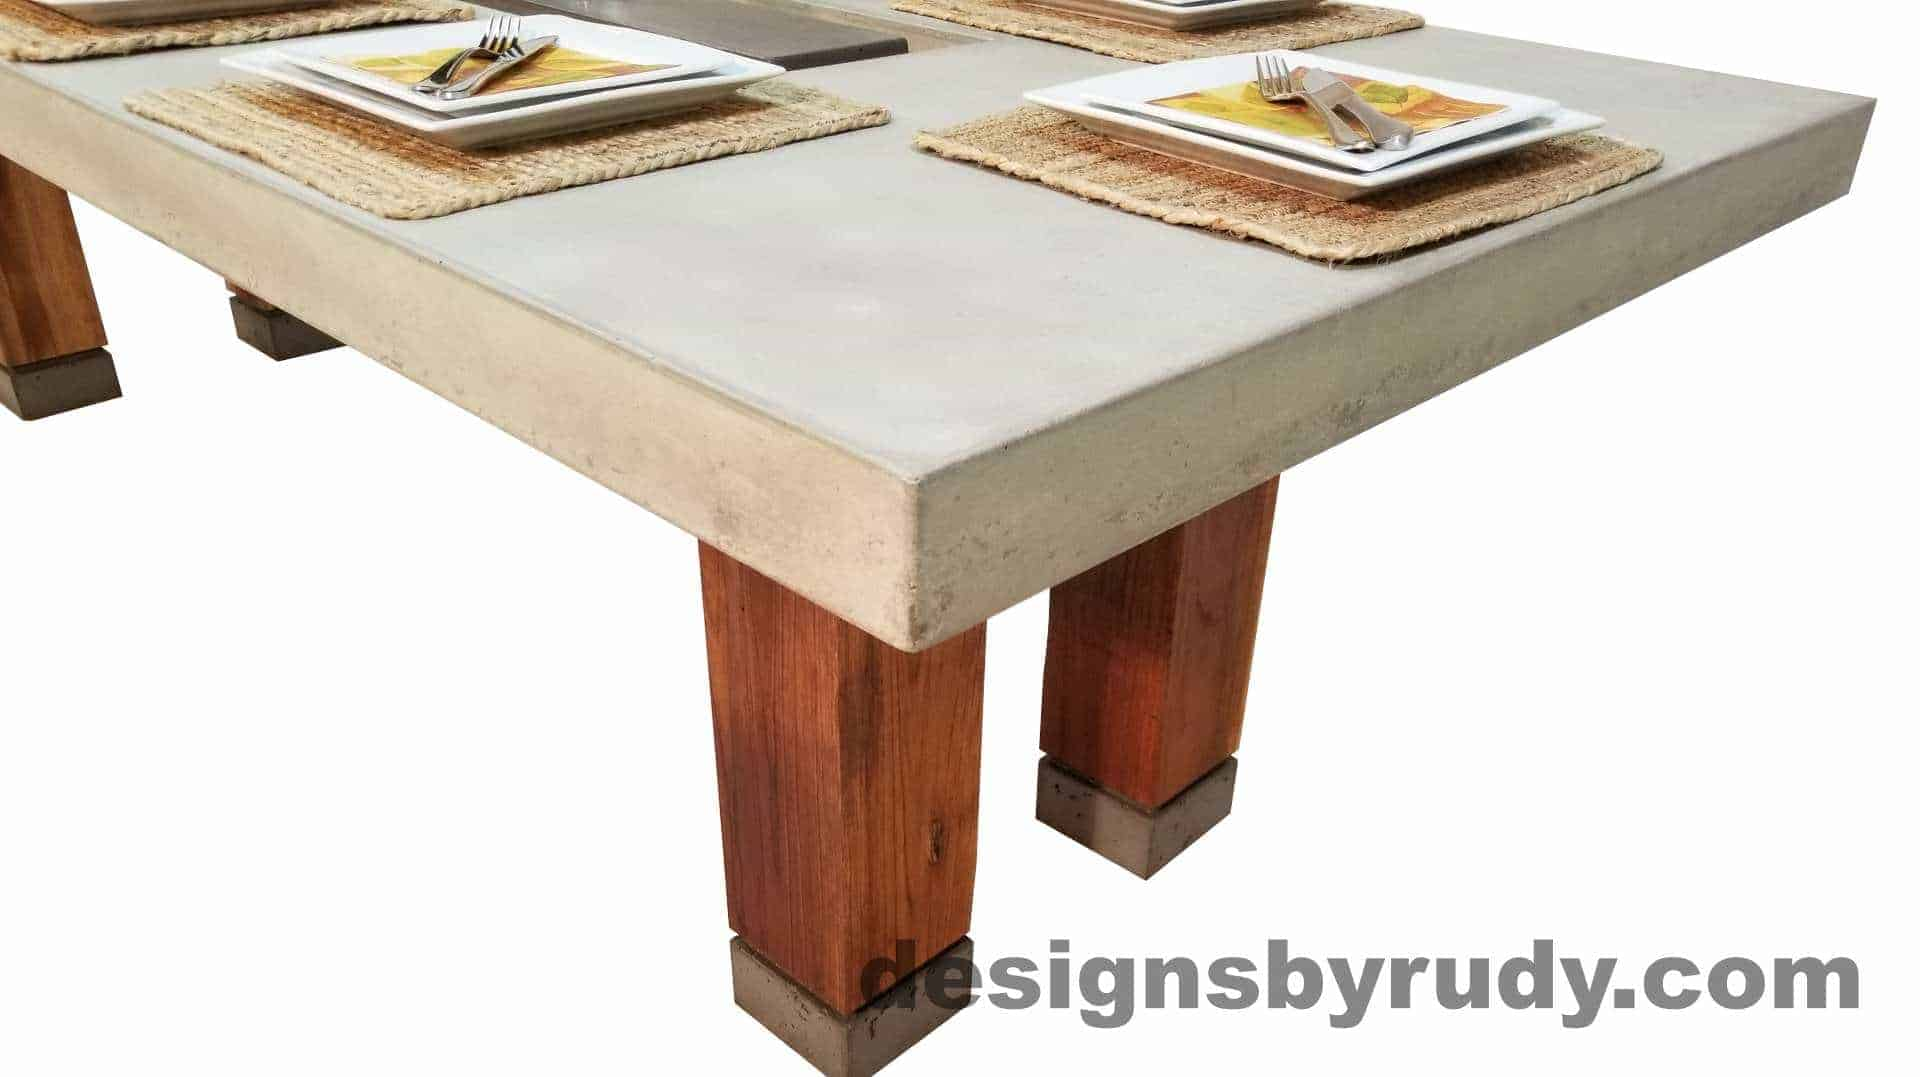 Popular DR DT1 Concrete Top Dining Table with Center Cutout and Teak Legs BN63